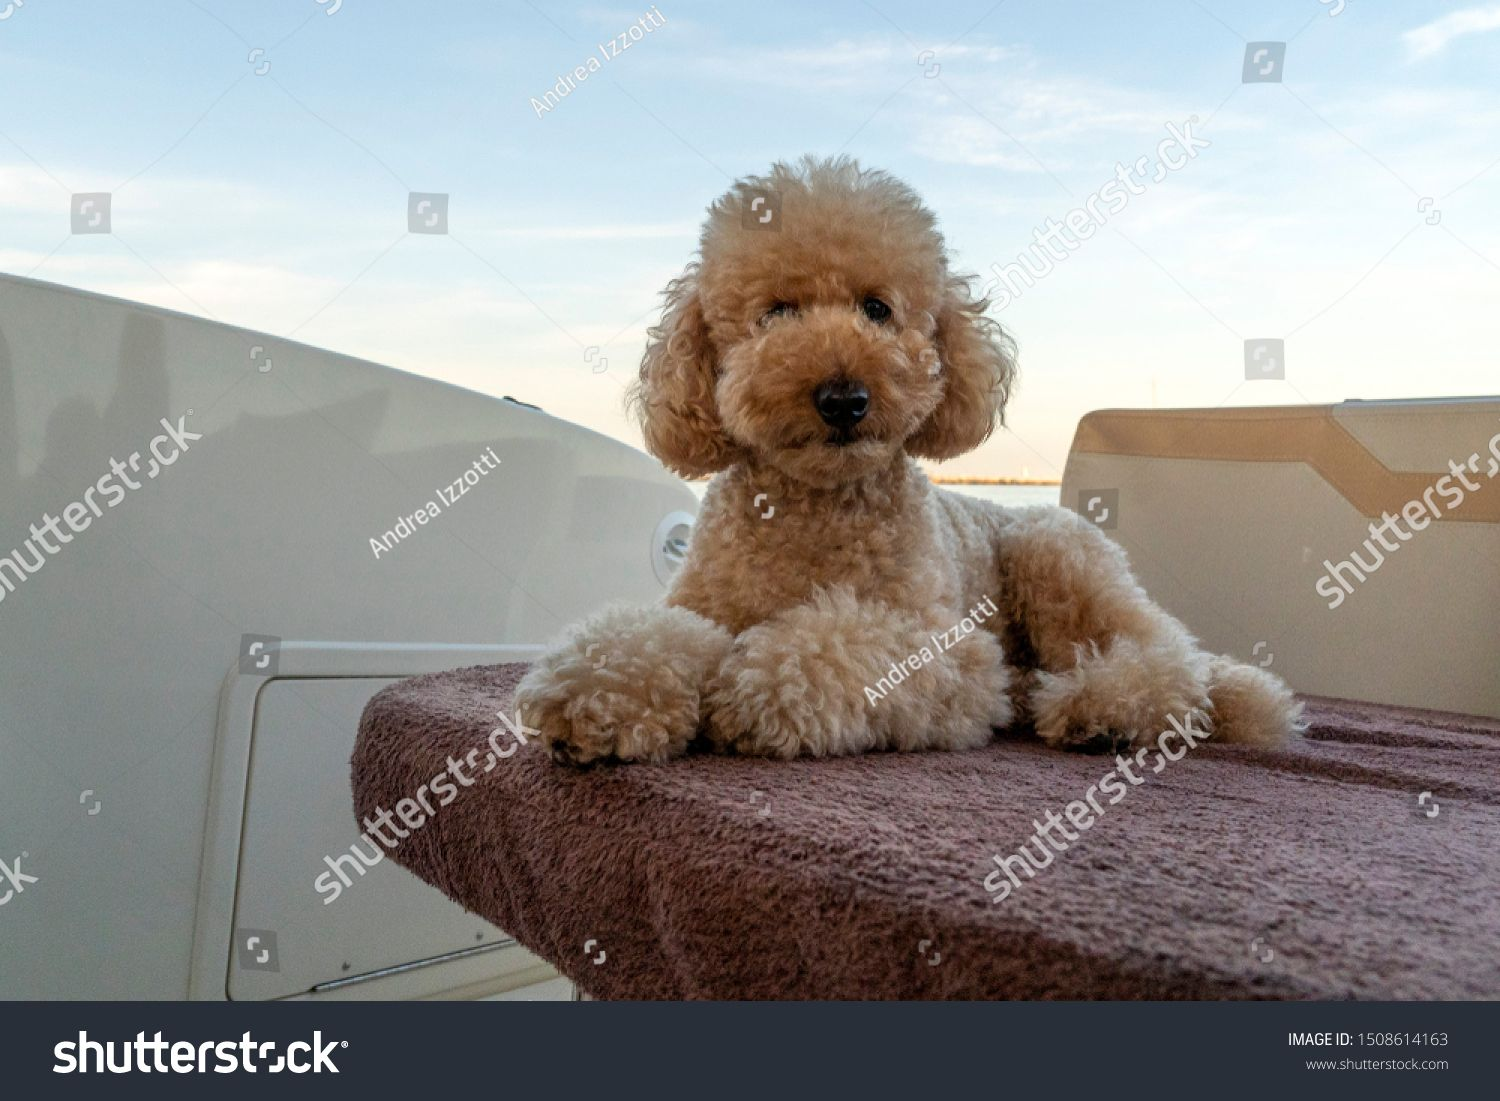 funny happy poodle dog looking at you #Ad , #ad, #happy#funny#dog#poodle